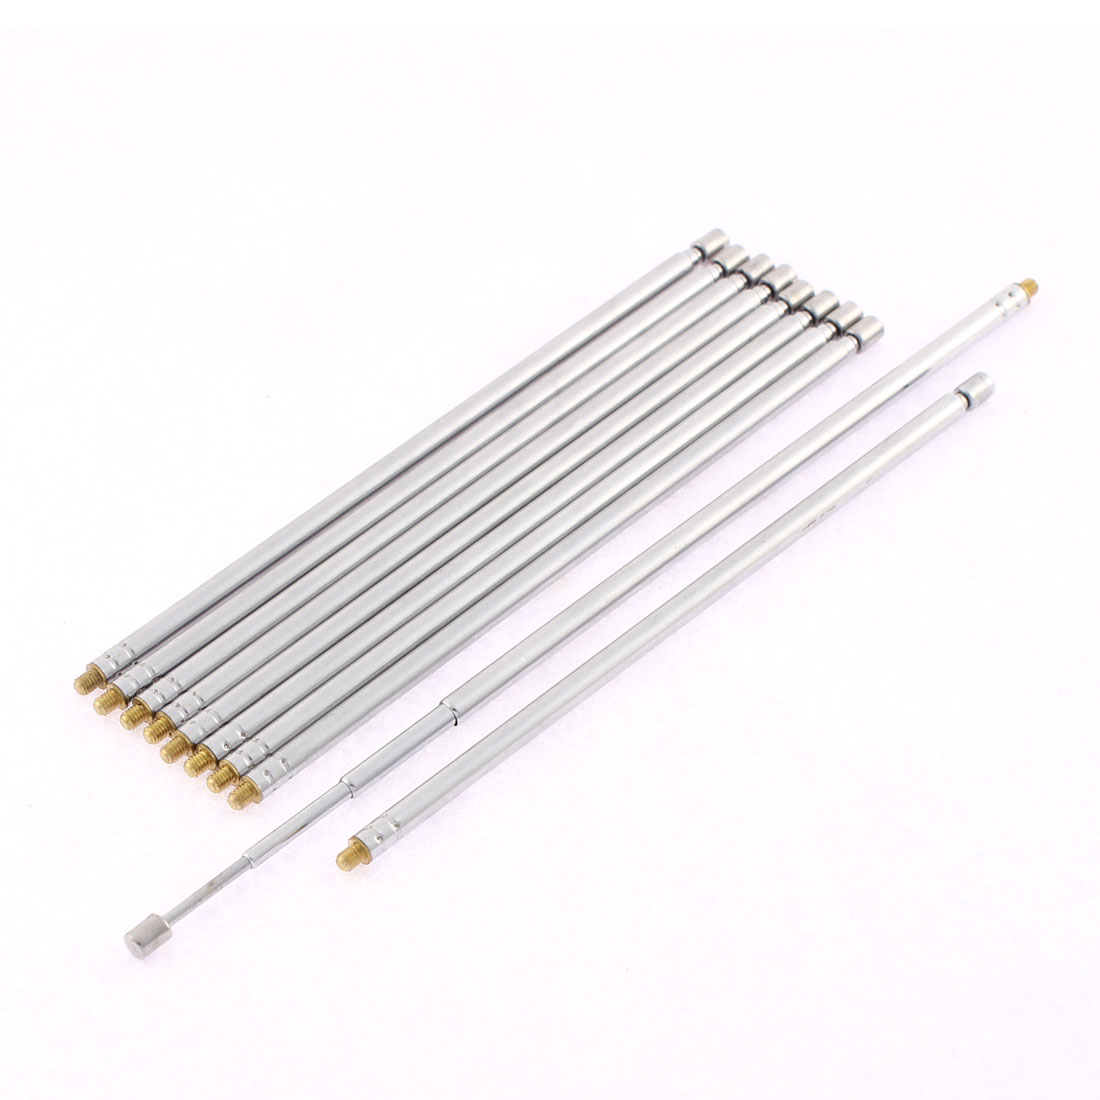 FM AM TV Radio 4 Sections Telescopic Antenna Aerial 43cm Length 10 Pcs